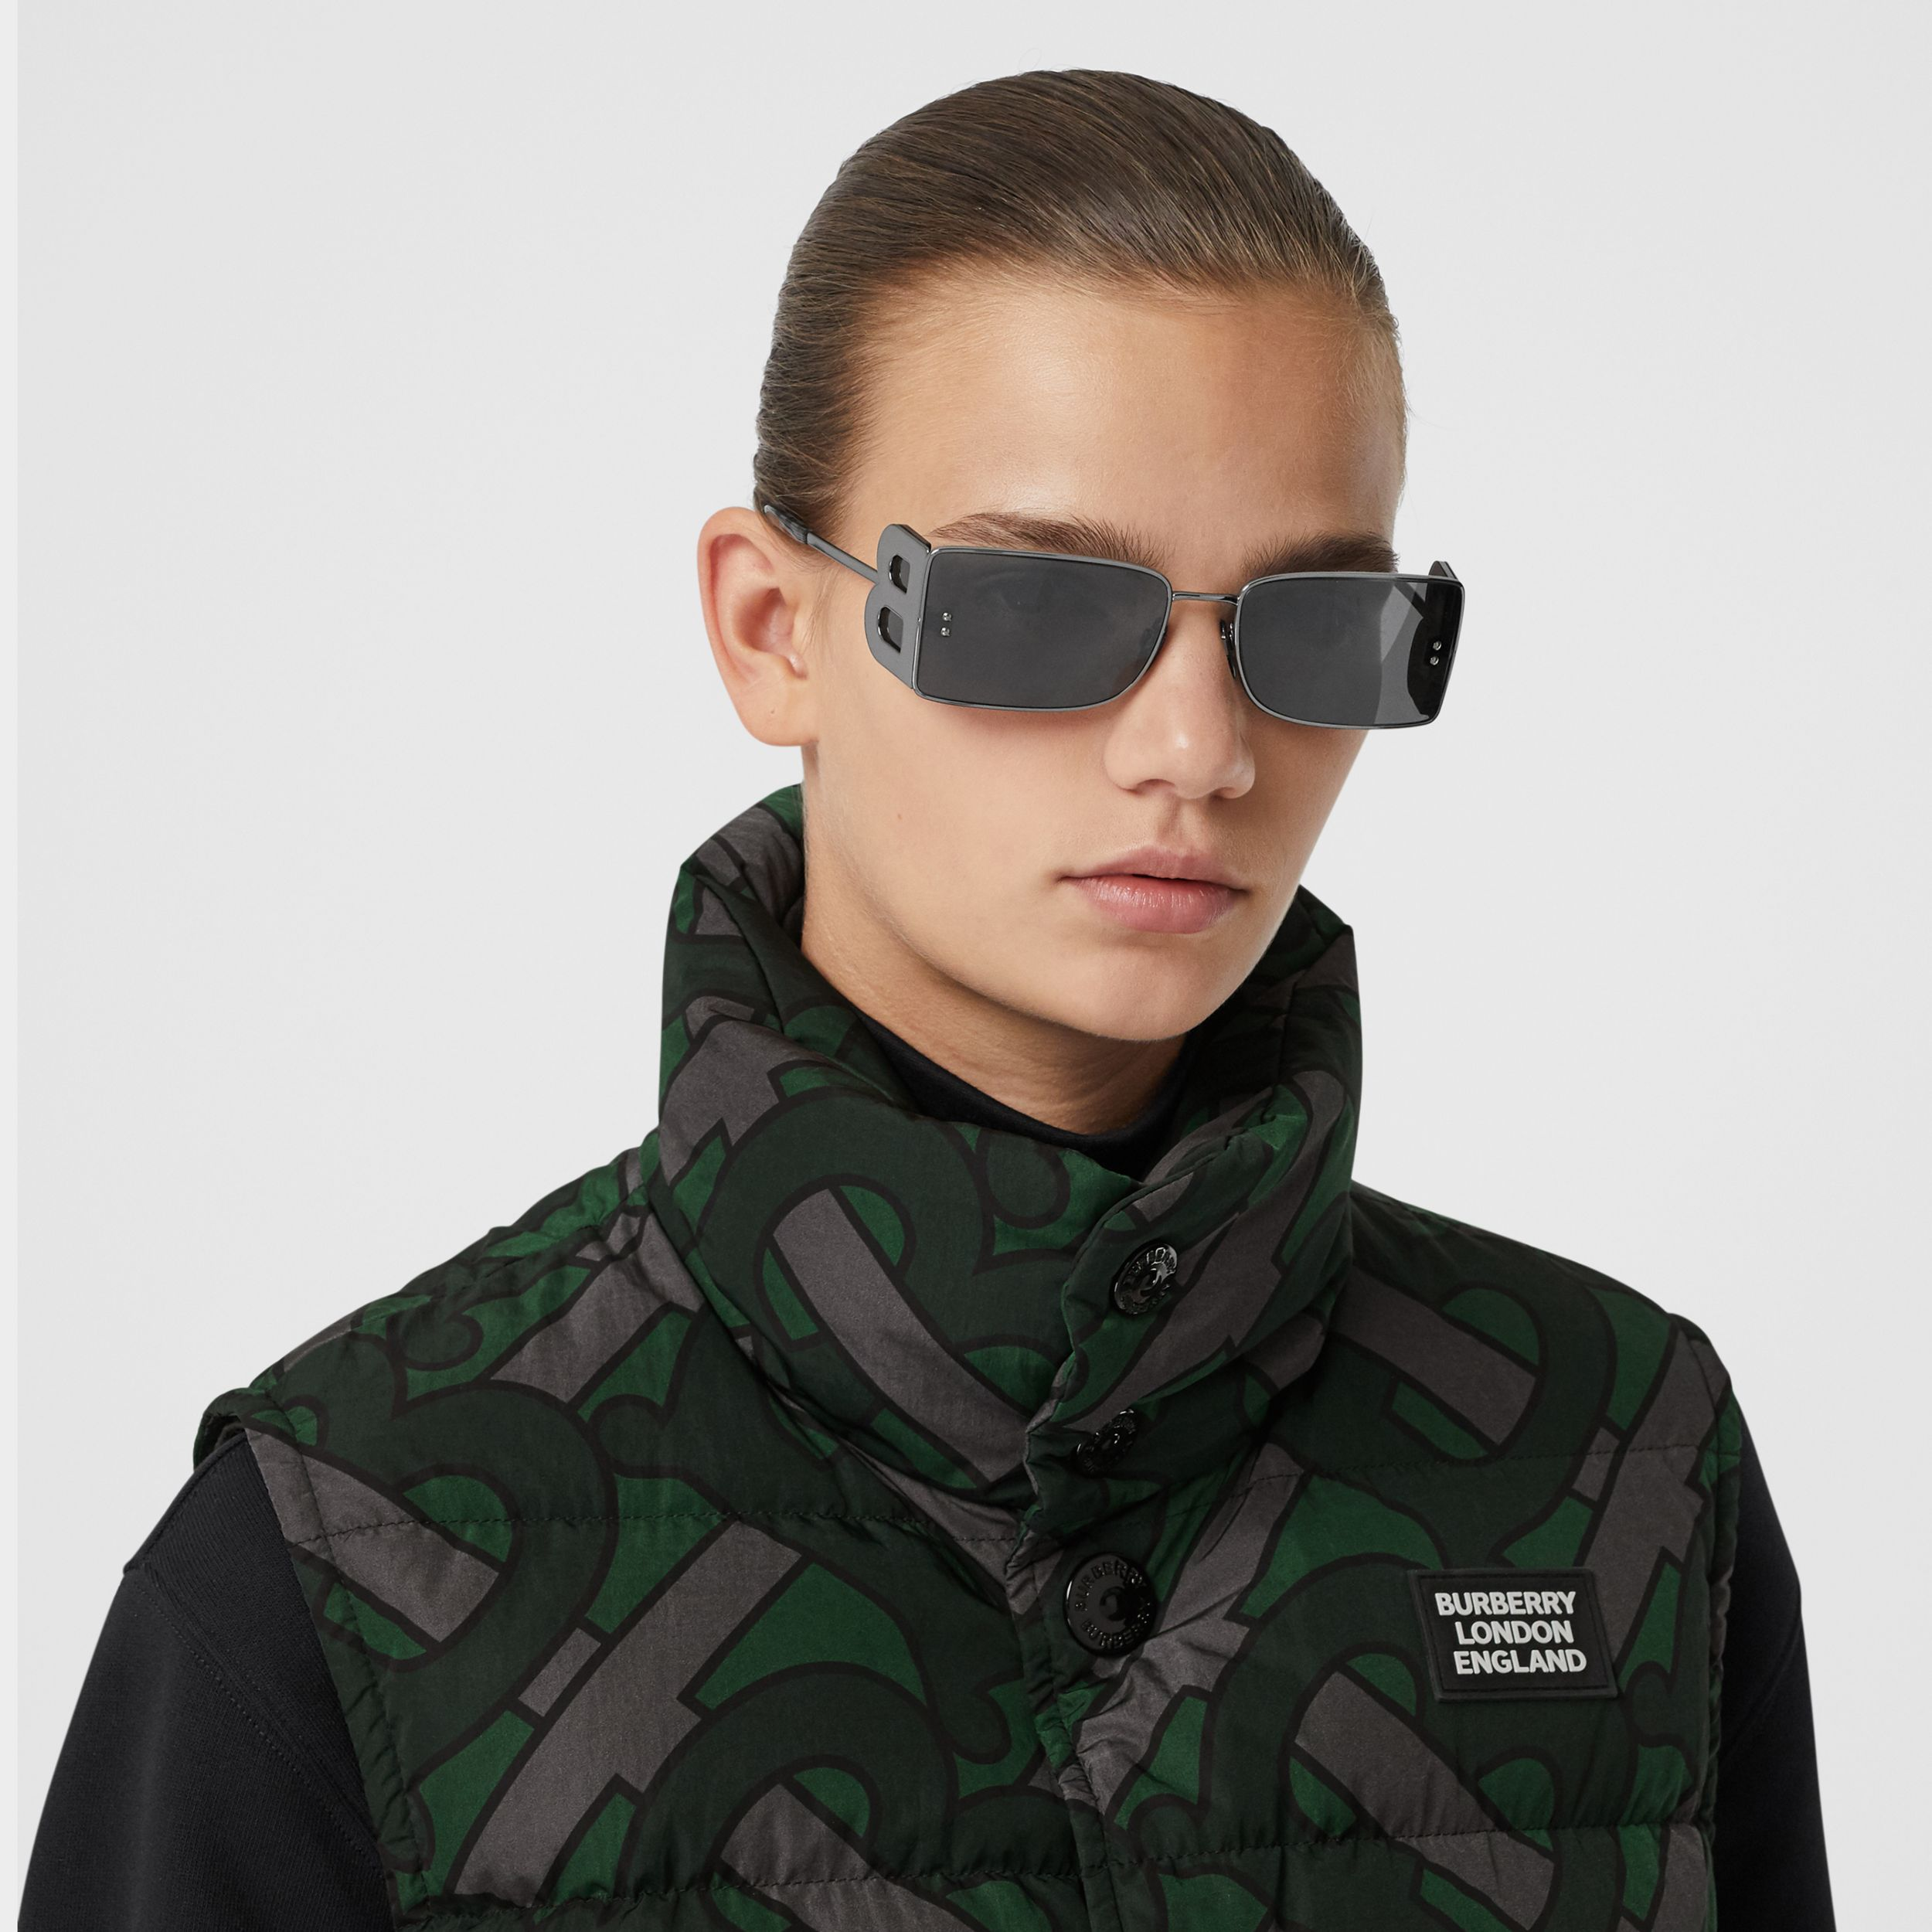 Monogram Print Puffer Gilet in Forest Green | Burberry - 2